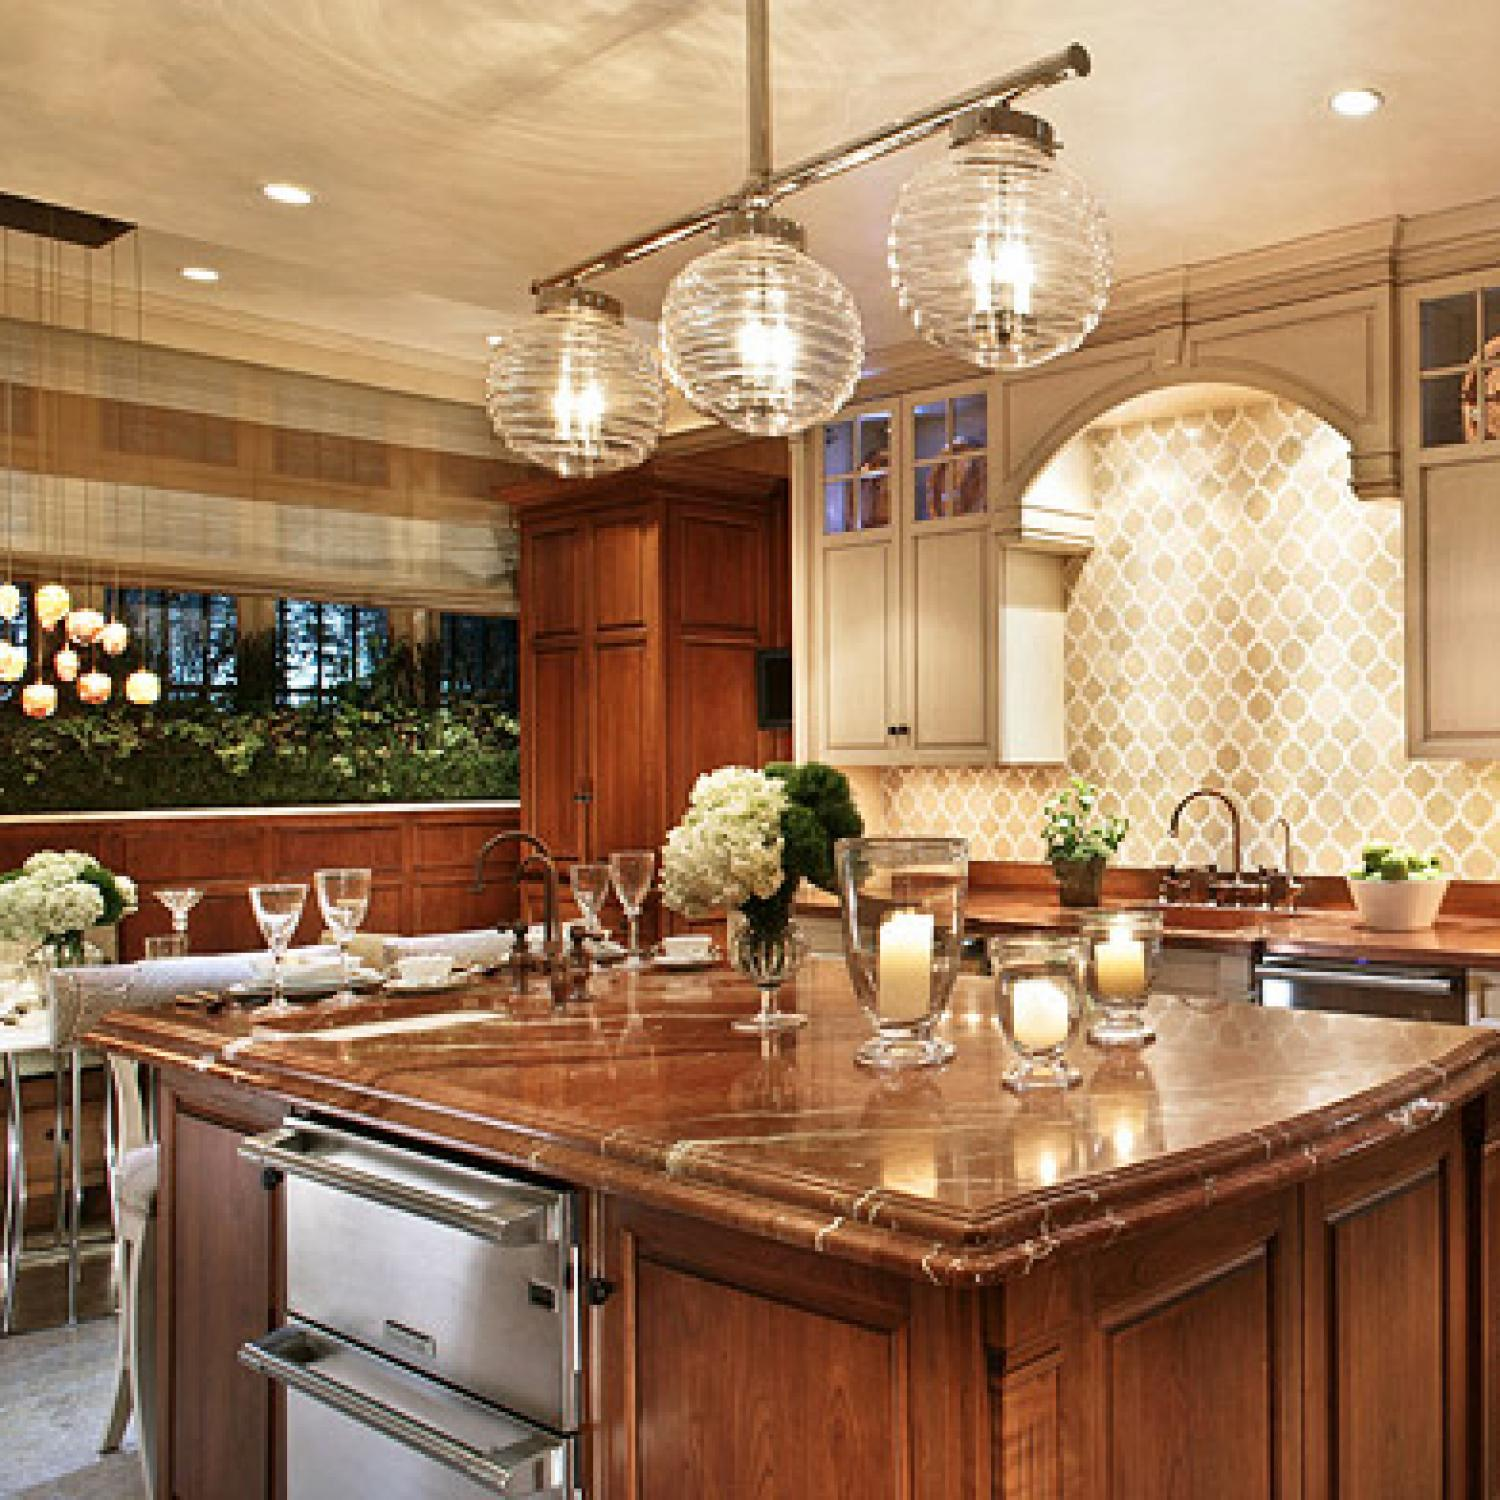 Welcoming, Intimate Showhouse Kitchen